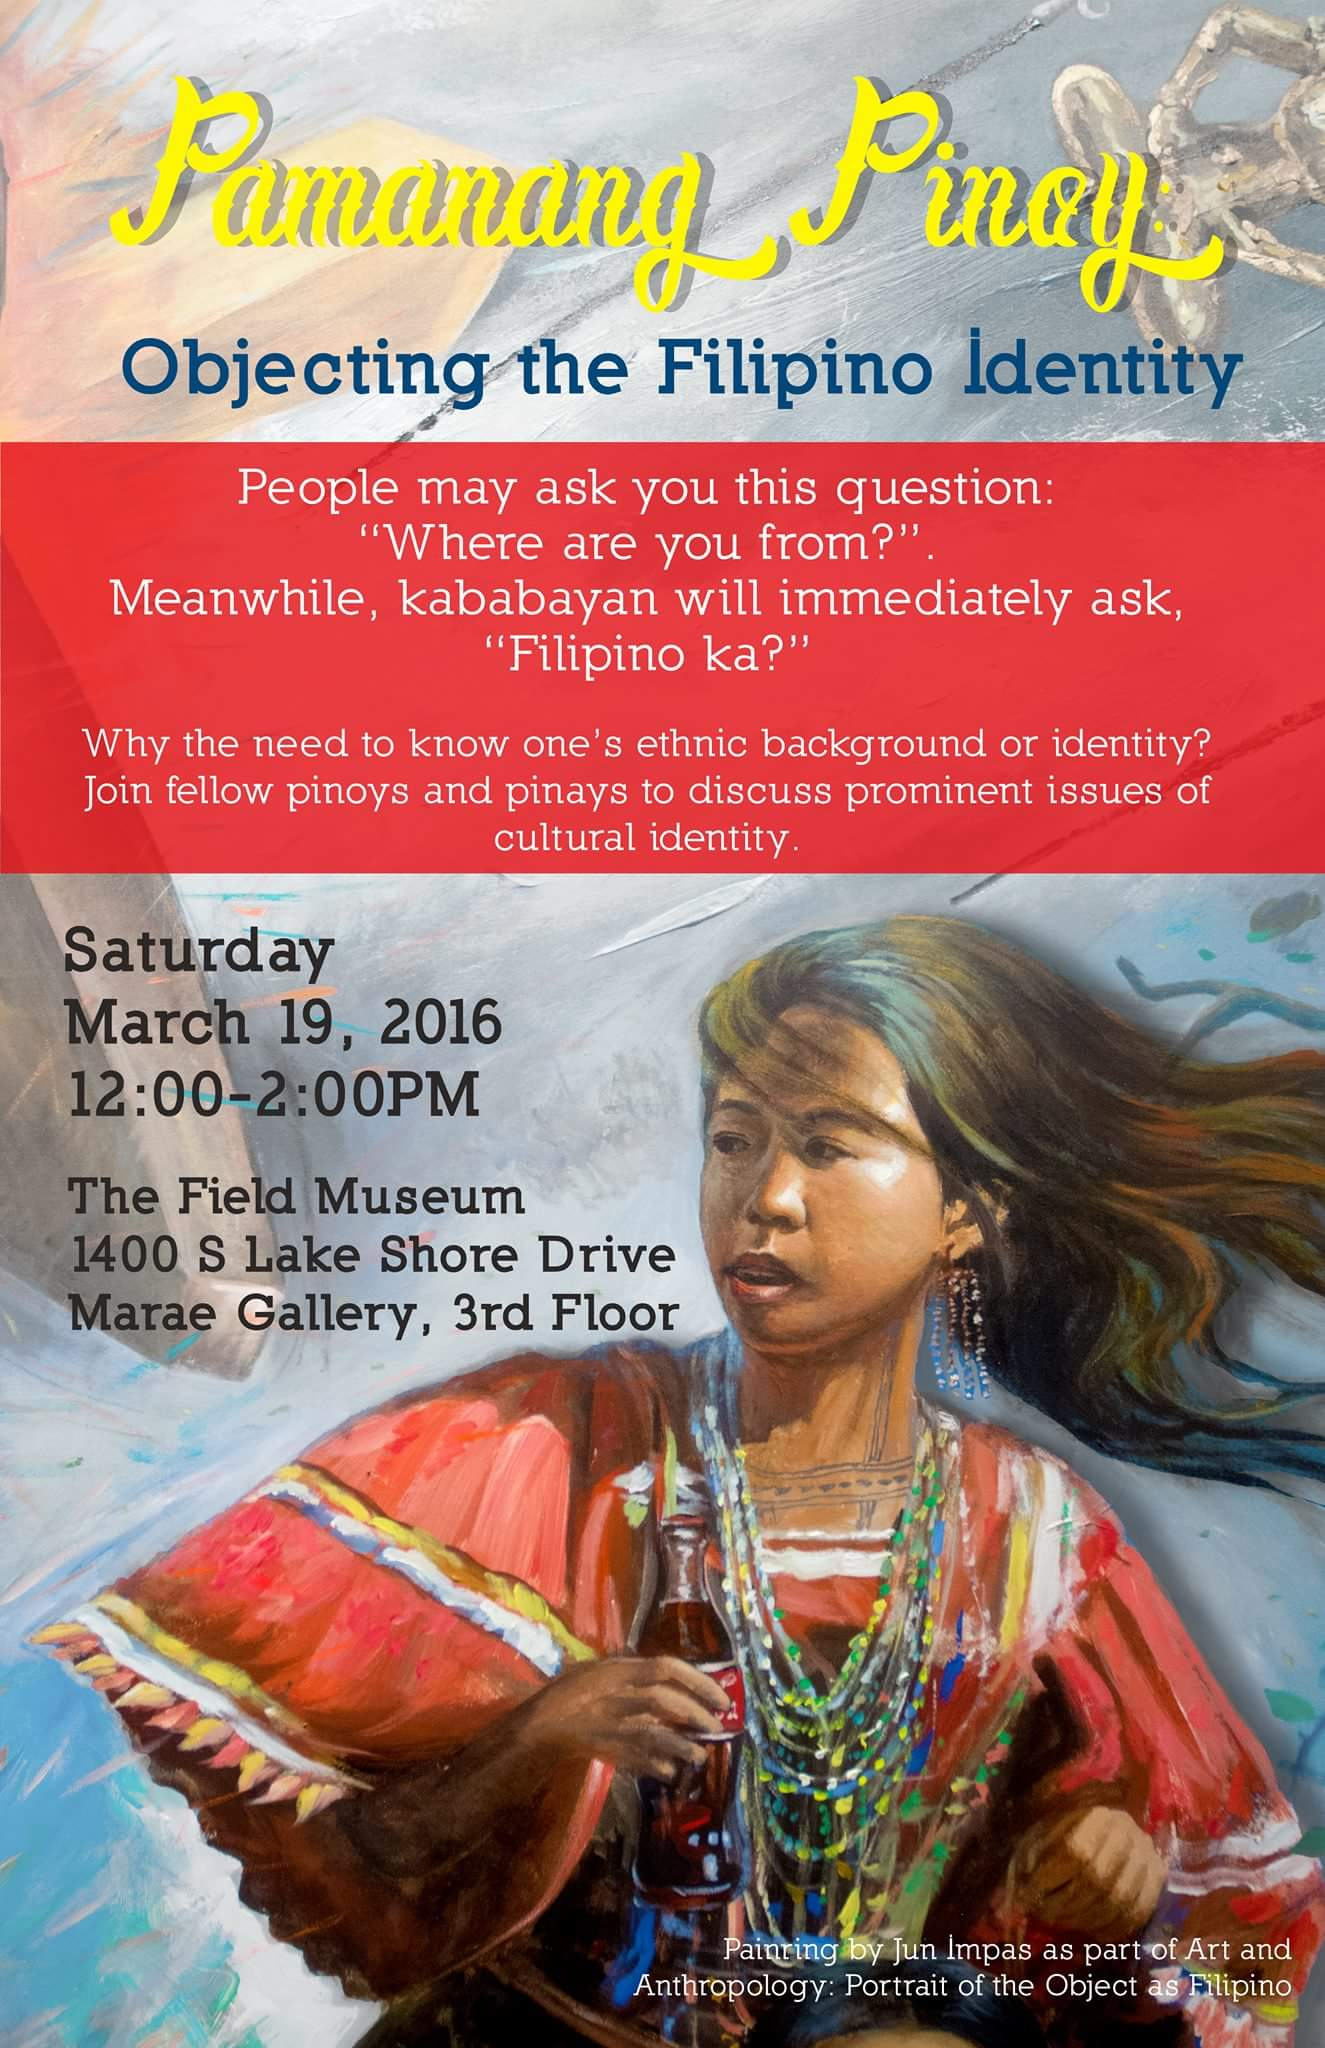 Event flier for Pamanang Pinoy: Objecting the Filipino Identity